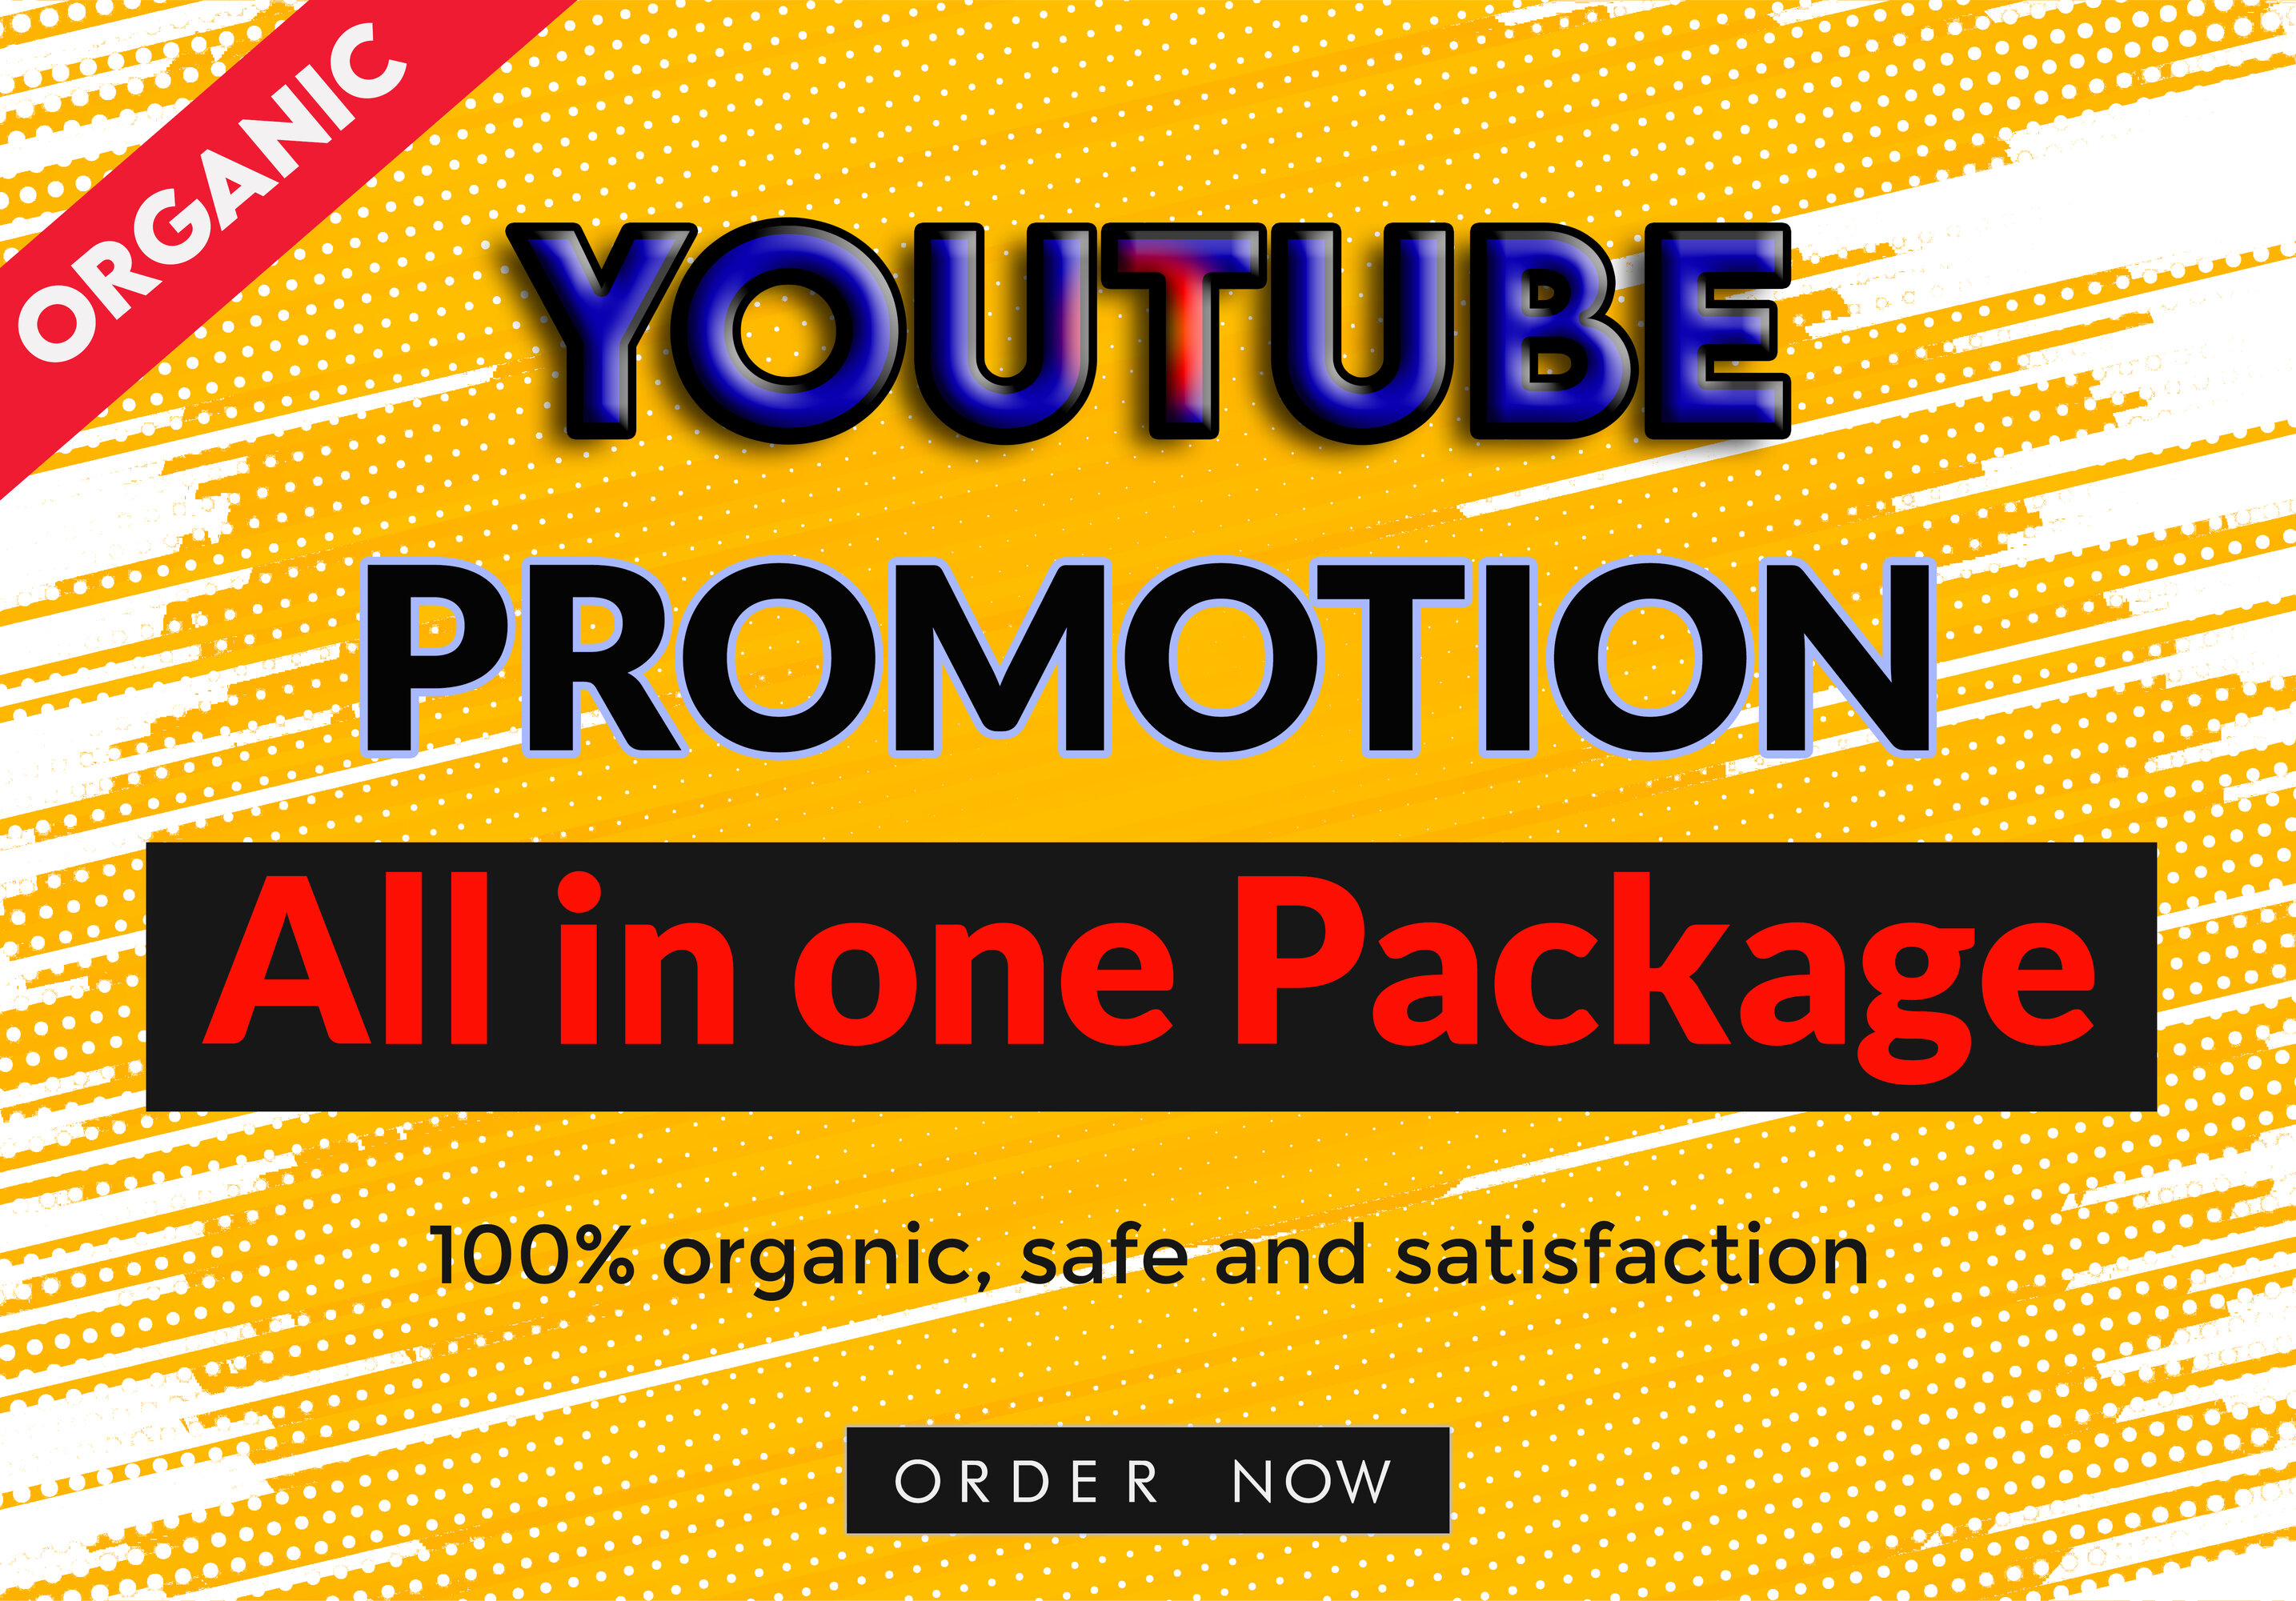 Package- All in one YouTube Video Promotion